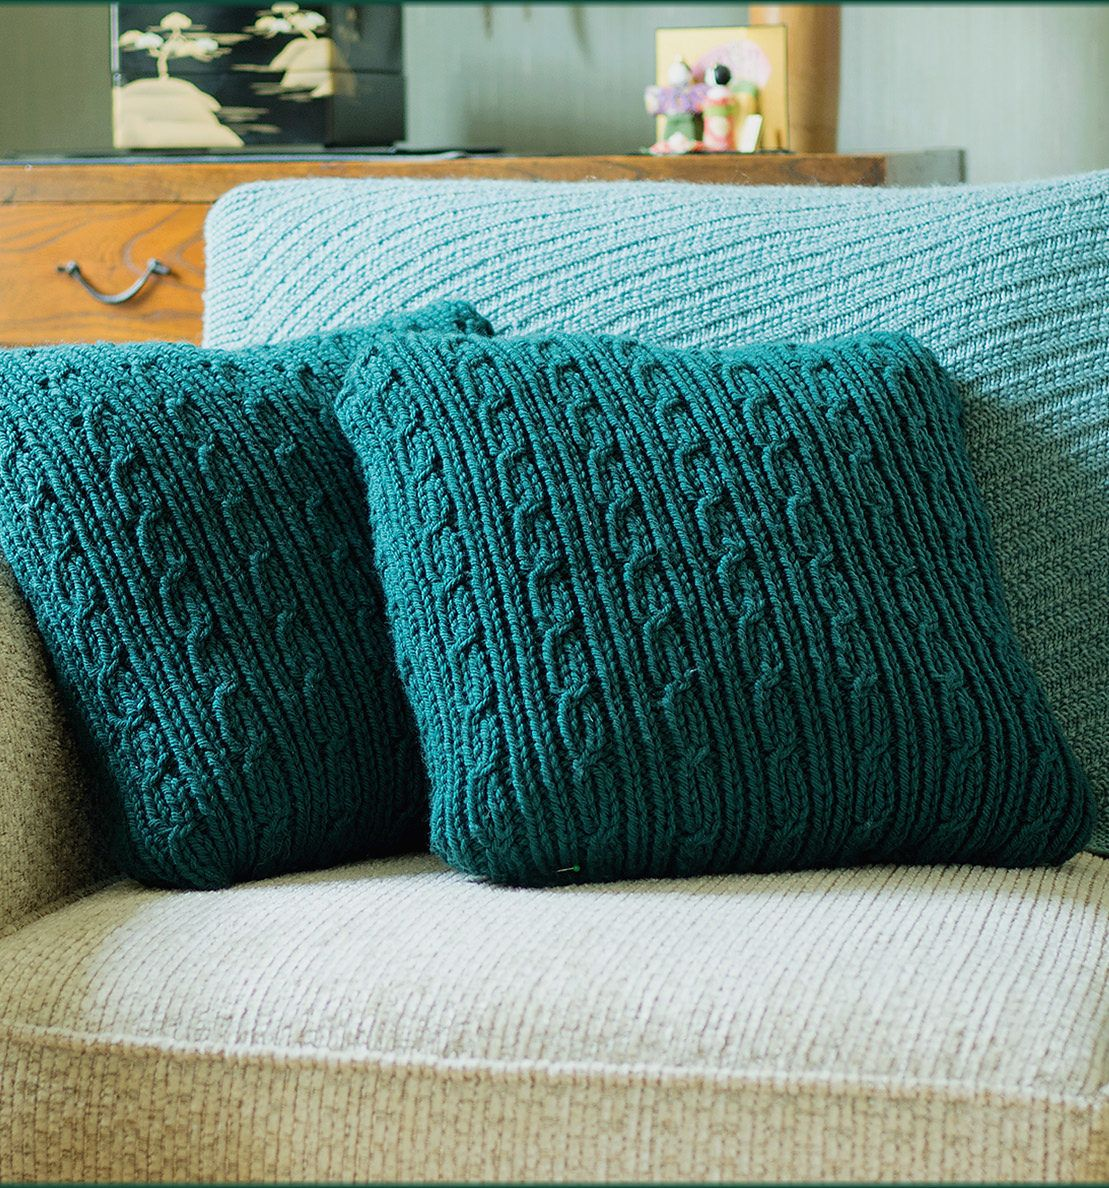 Free until nov 30 2017 knitting pattern for vernwood cushions free until nov 30 2017 knitting pattern for vernwood cushions cushion covers that feature a cabled design which sits neatly embedded into deep textural bankloansurffo Images